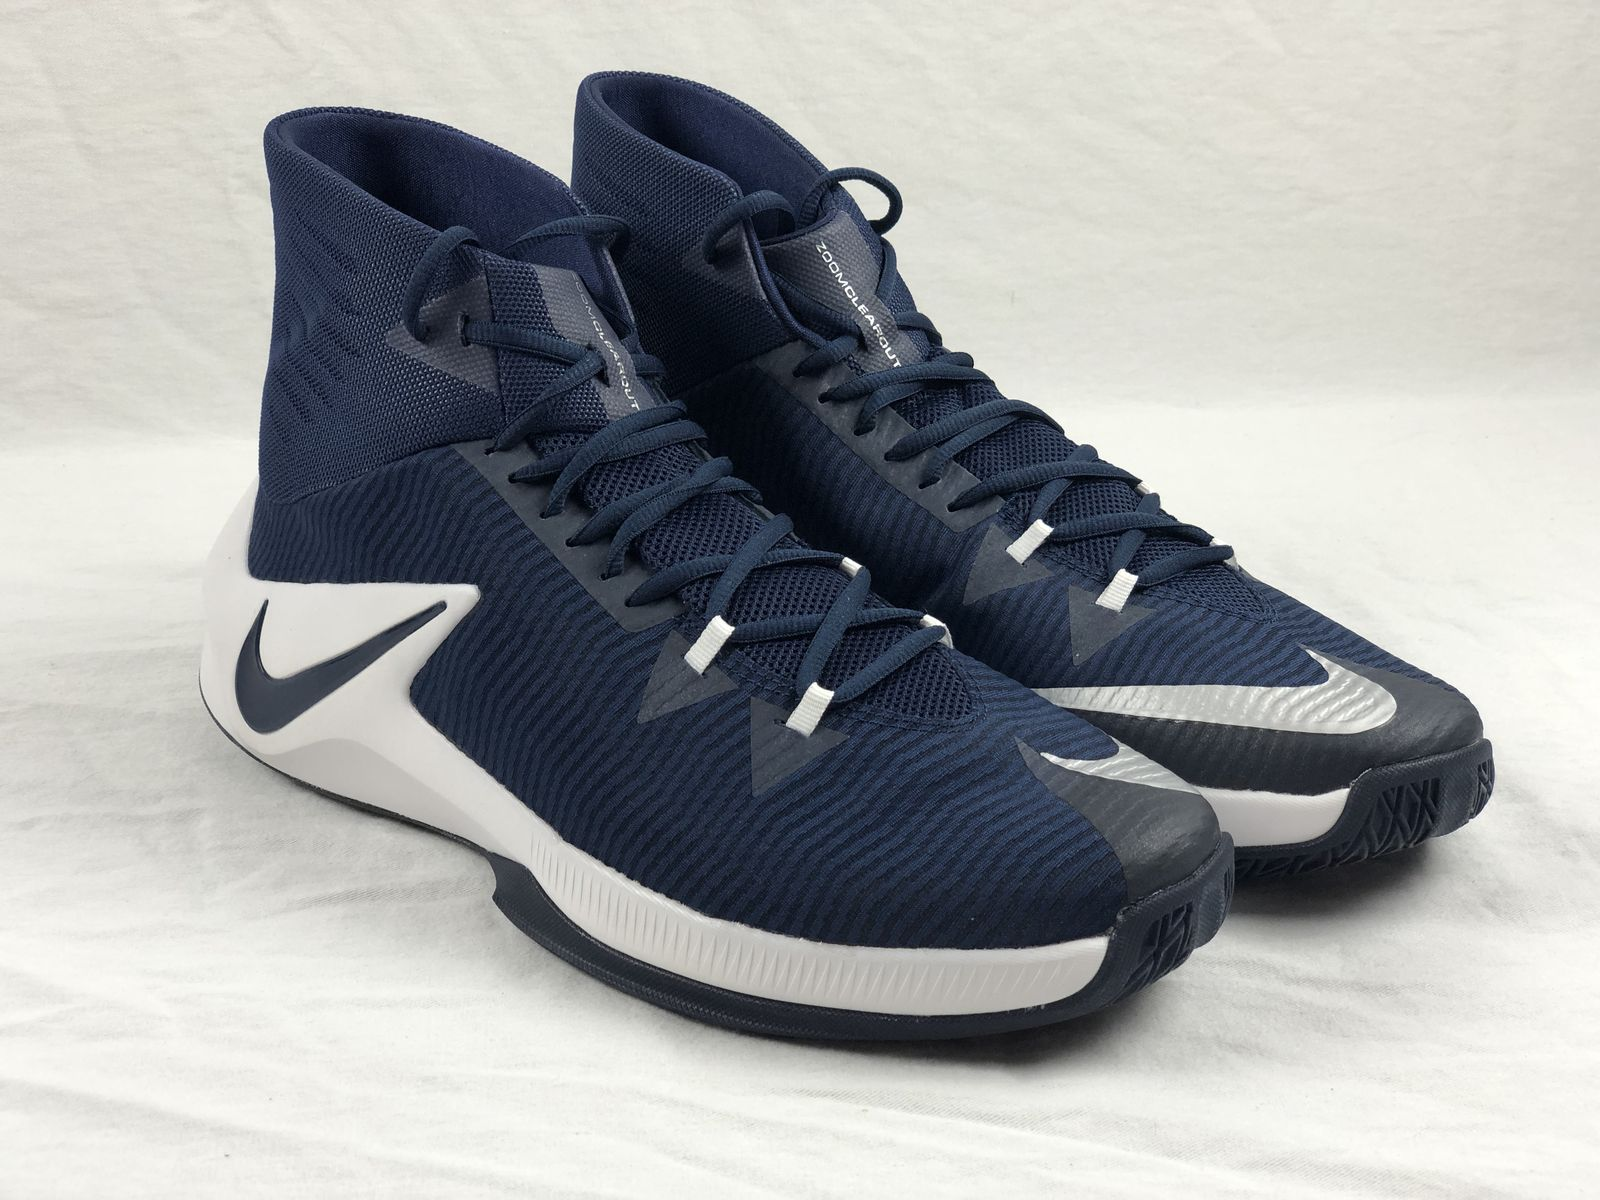 745007fbde7 Details about NEW Nike Zoom Clear Out TB Promo - Navy/White Basketball Shoes  (Men's 17)